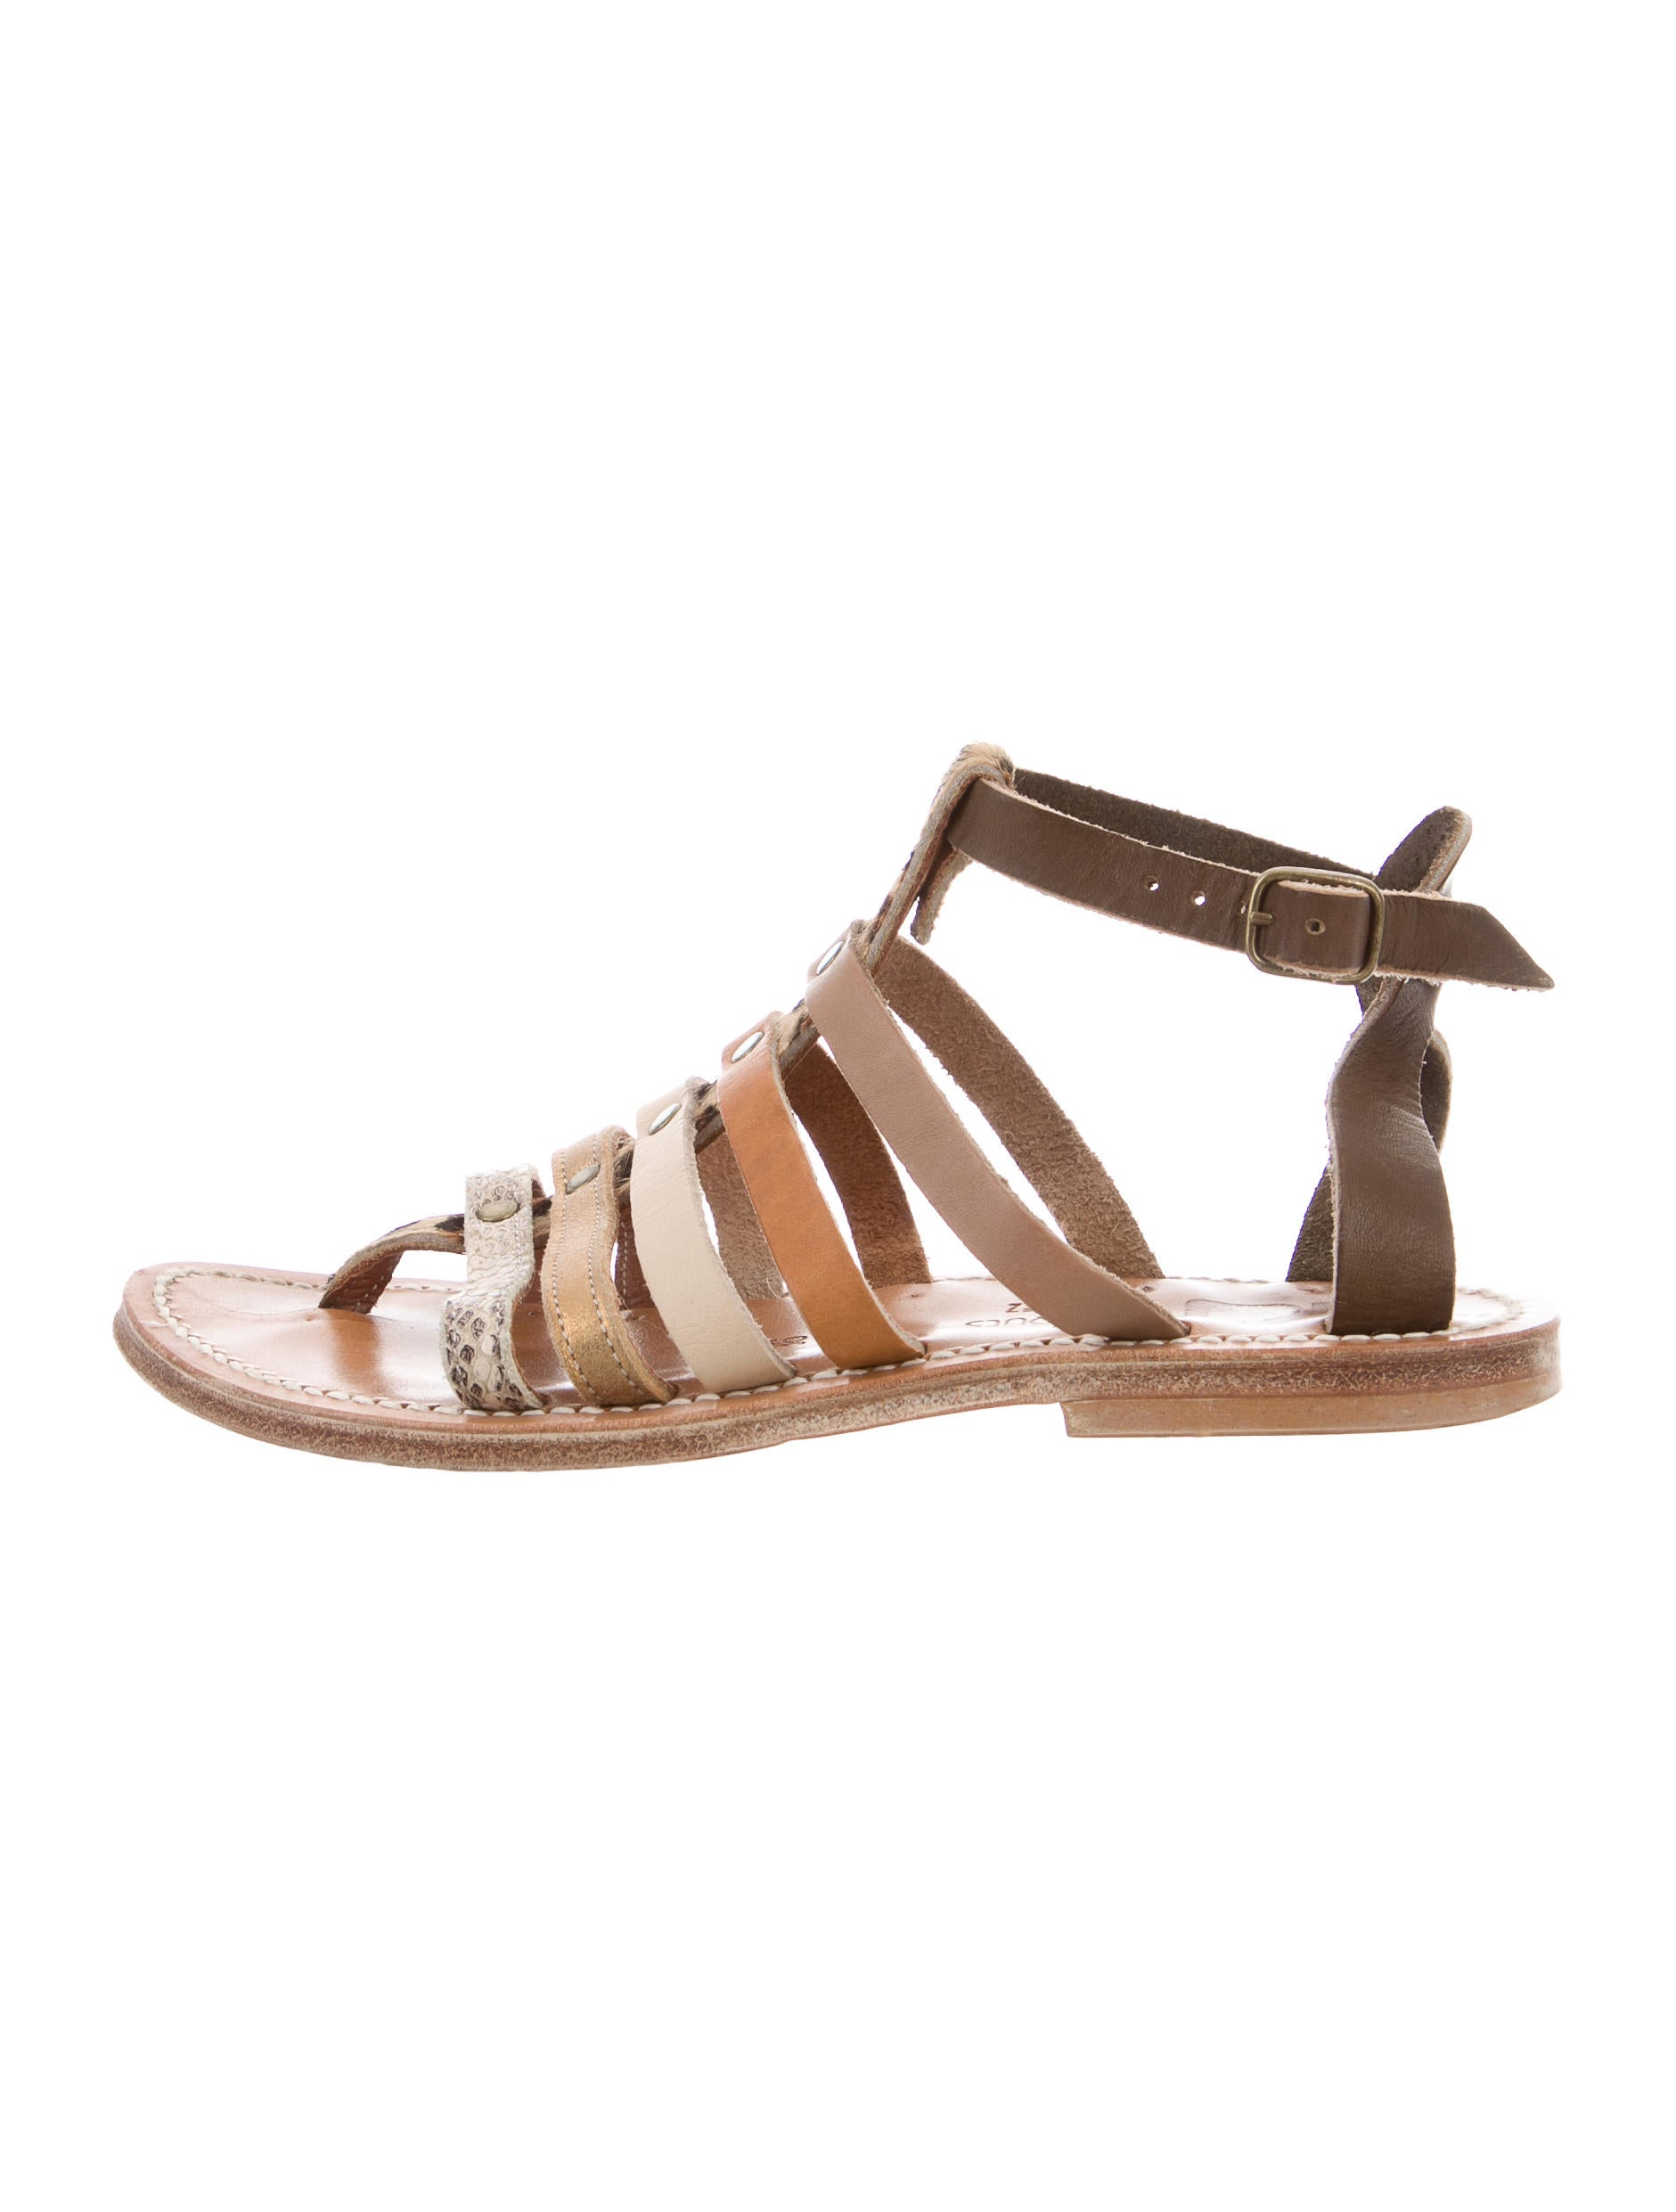 how much online clearance reliable K Jacques St. Tropez Ponyhair Ankle-Cuff Sandals release dates for sale discount the cheapest discounts cheap price fq56a7